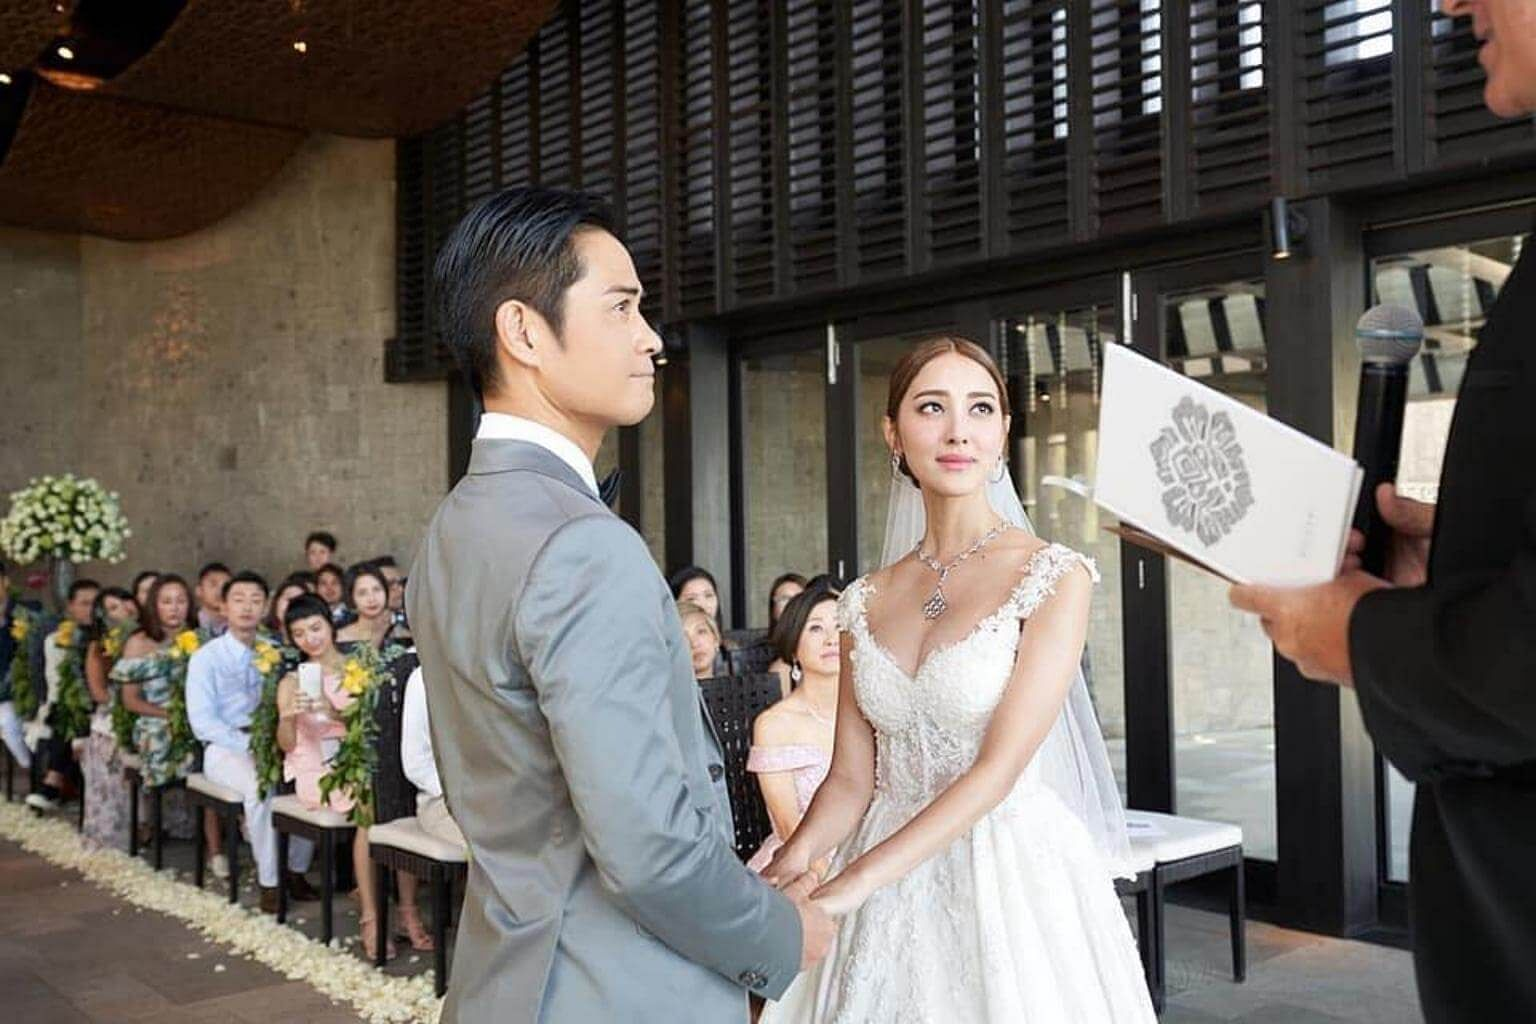 b97e57726d8a Hong Kong stars Grace Chan and Kevin Cheng tie the knot in Bali,  Entertainment News & Top Stories - The Straits Times